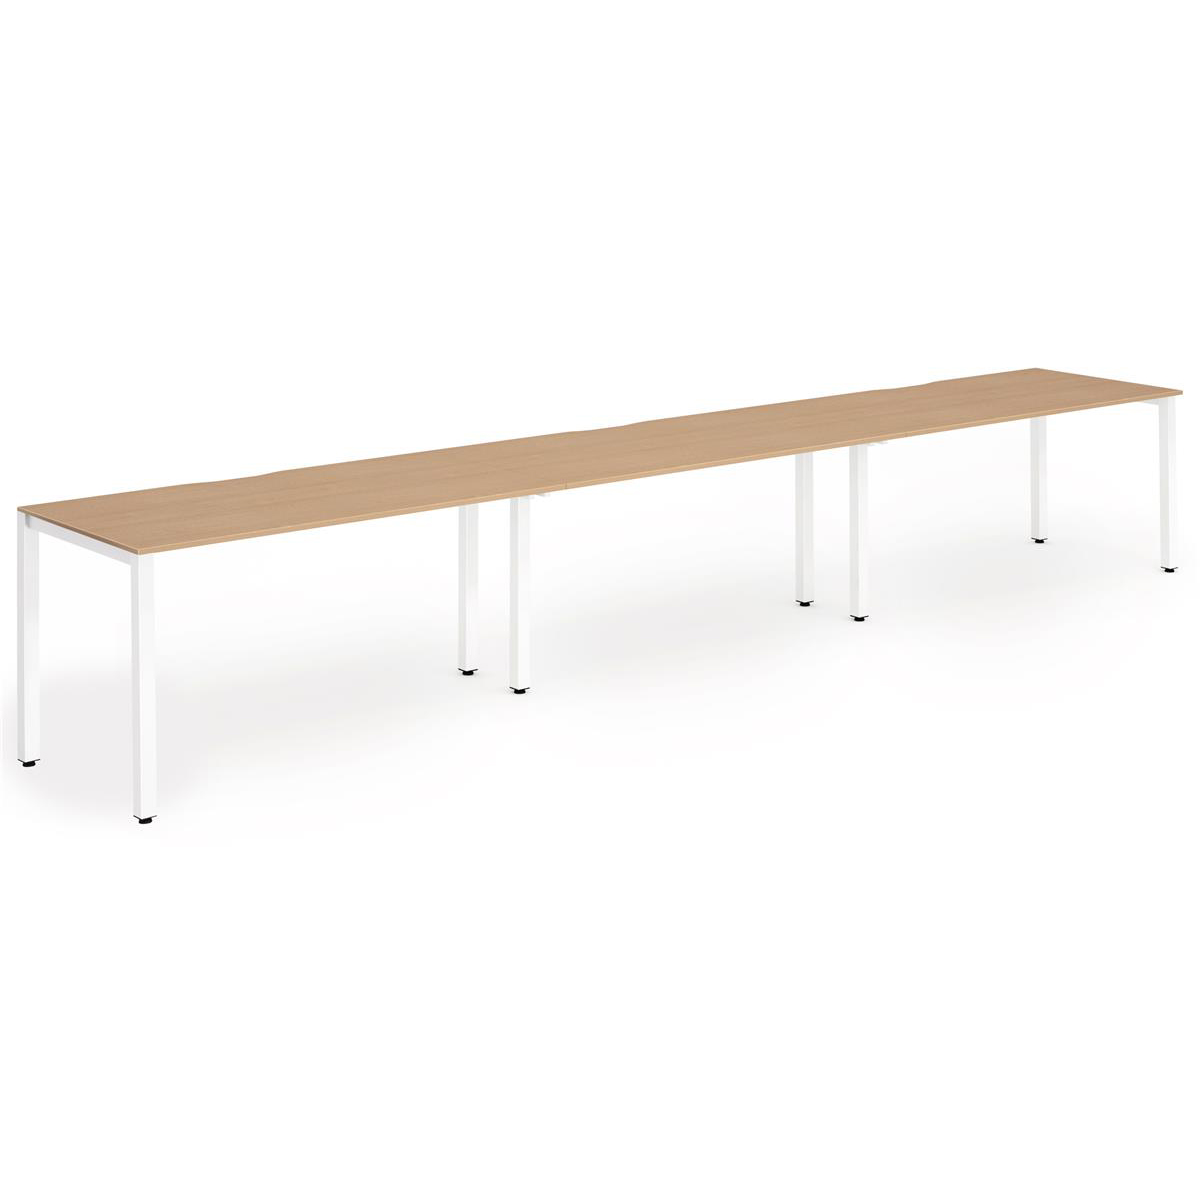 Trexus Bench Desk 3 Person Side to Side Configuration White Leg 4800x800mm Beech Ref BE392